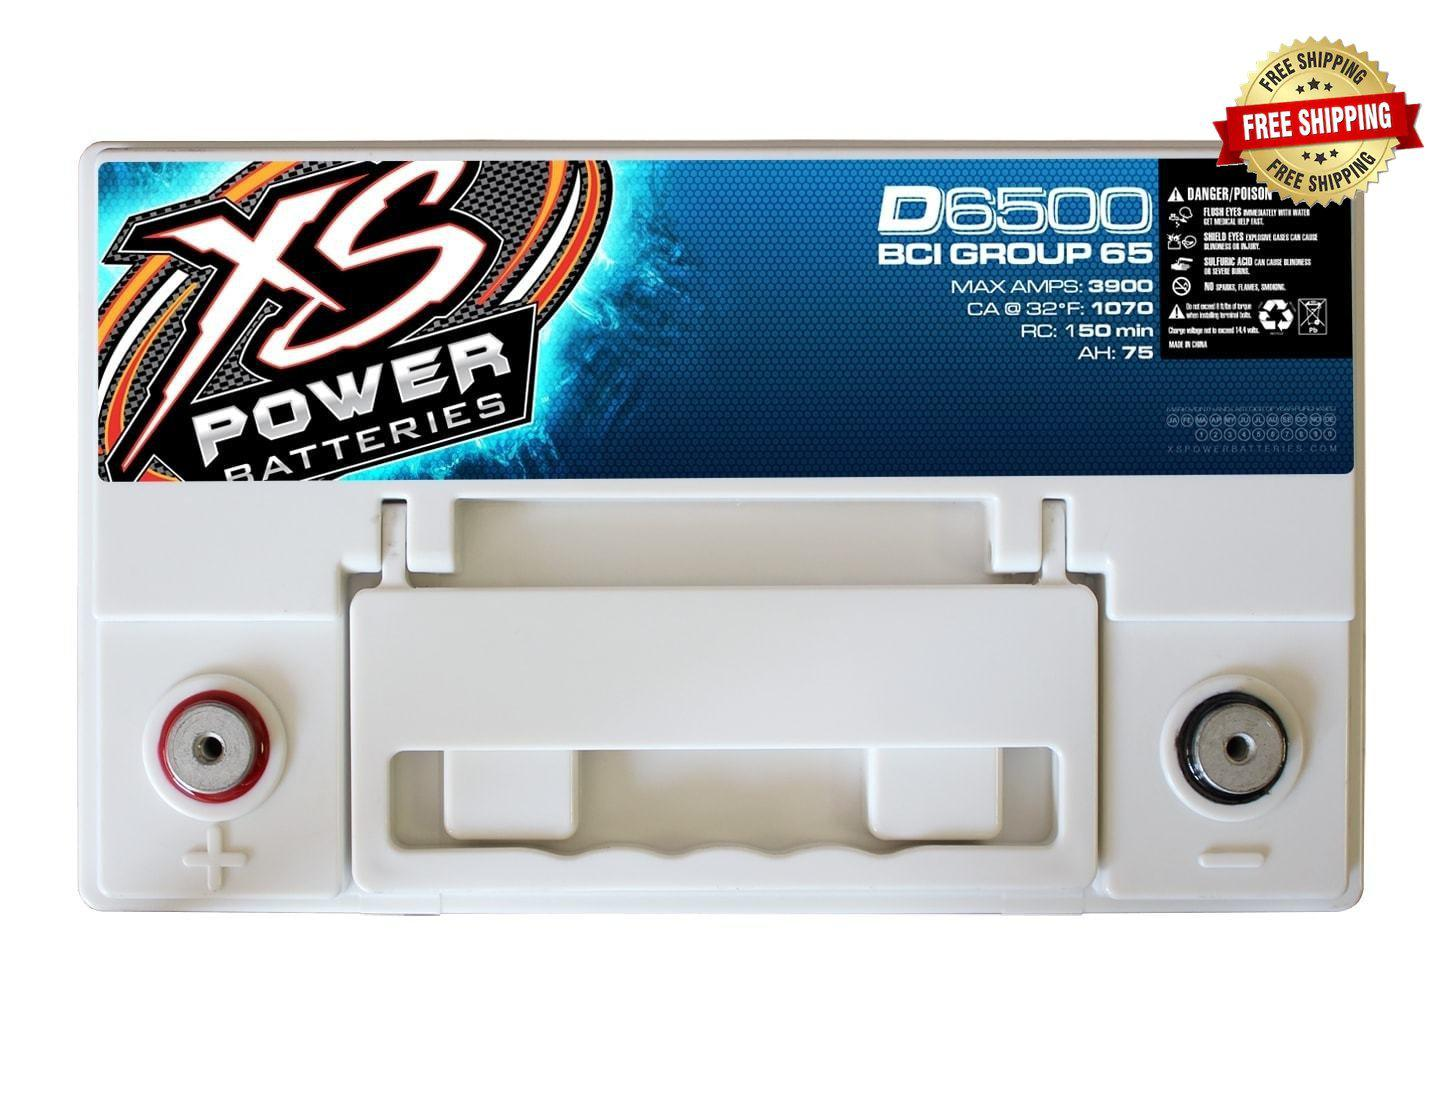 D6500 XS Power 12VDC AGM Car Audio Battery 3900A 75Ah Group 65